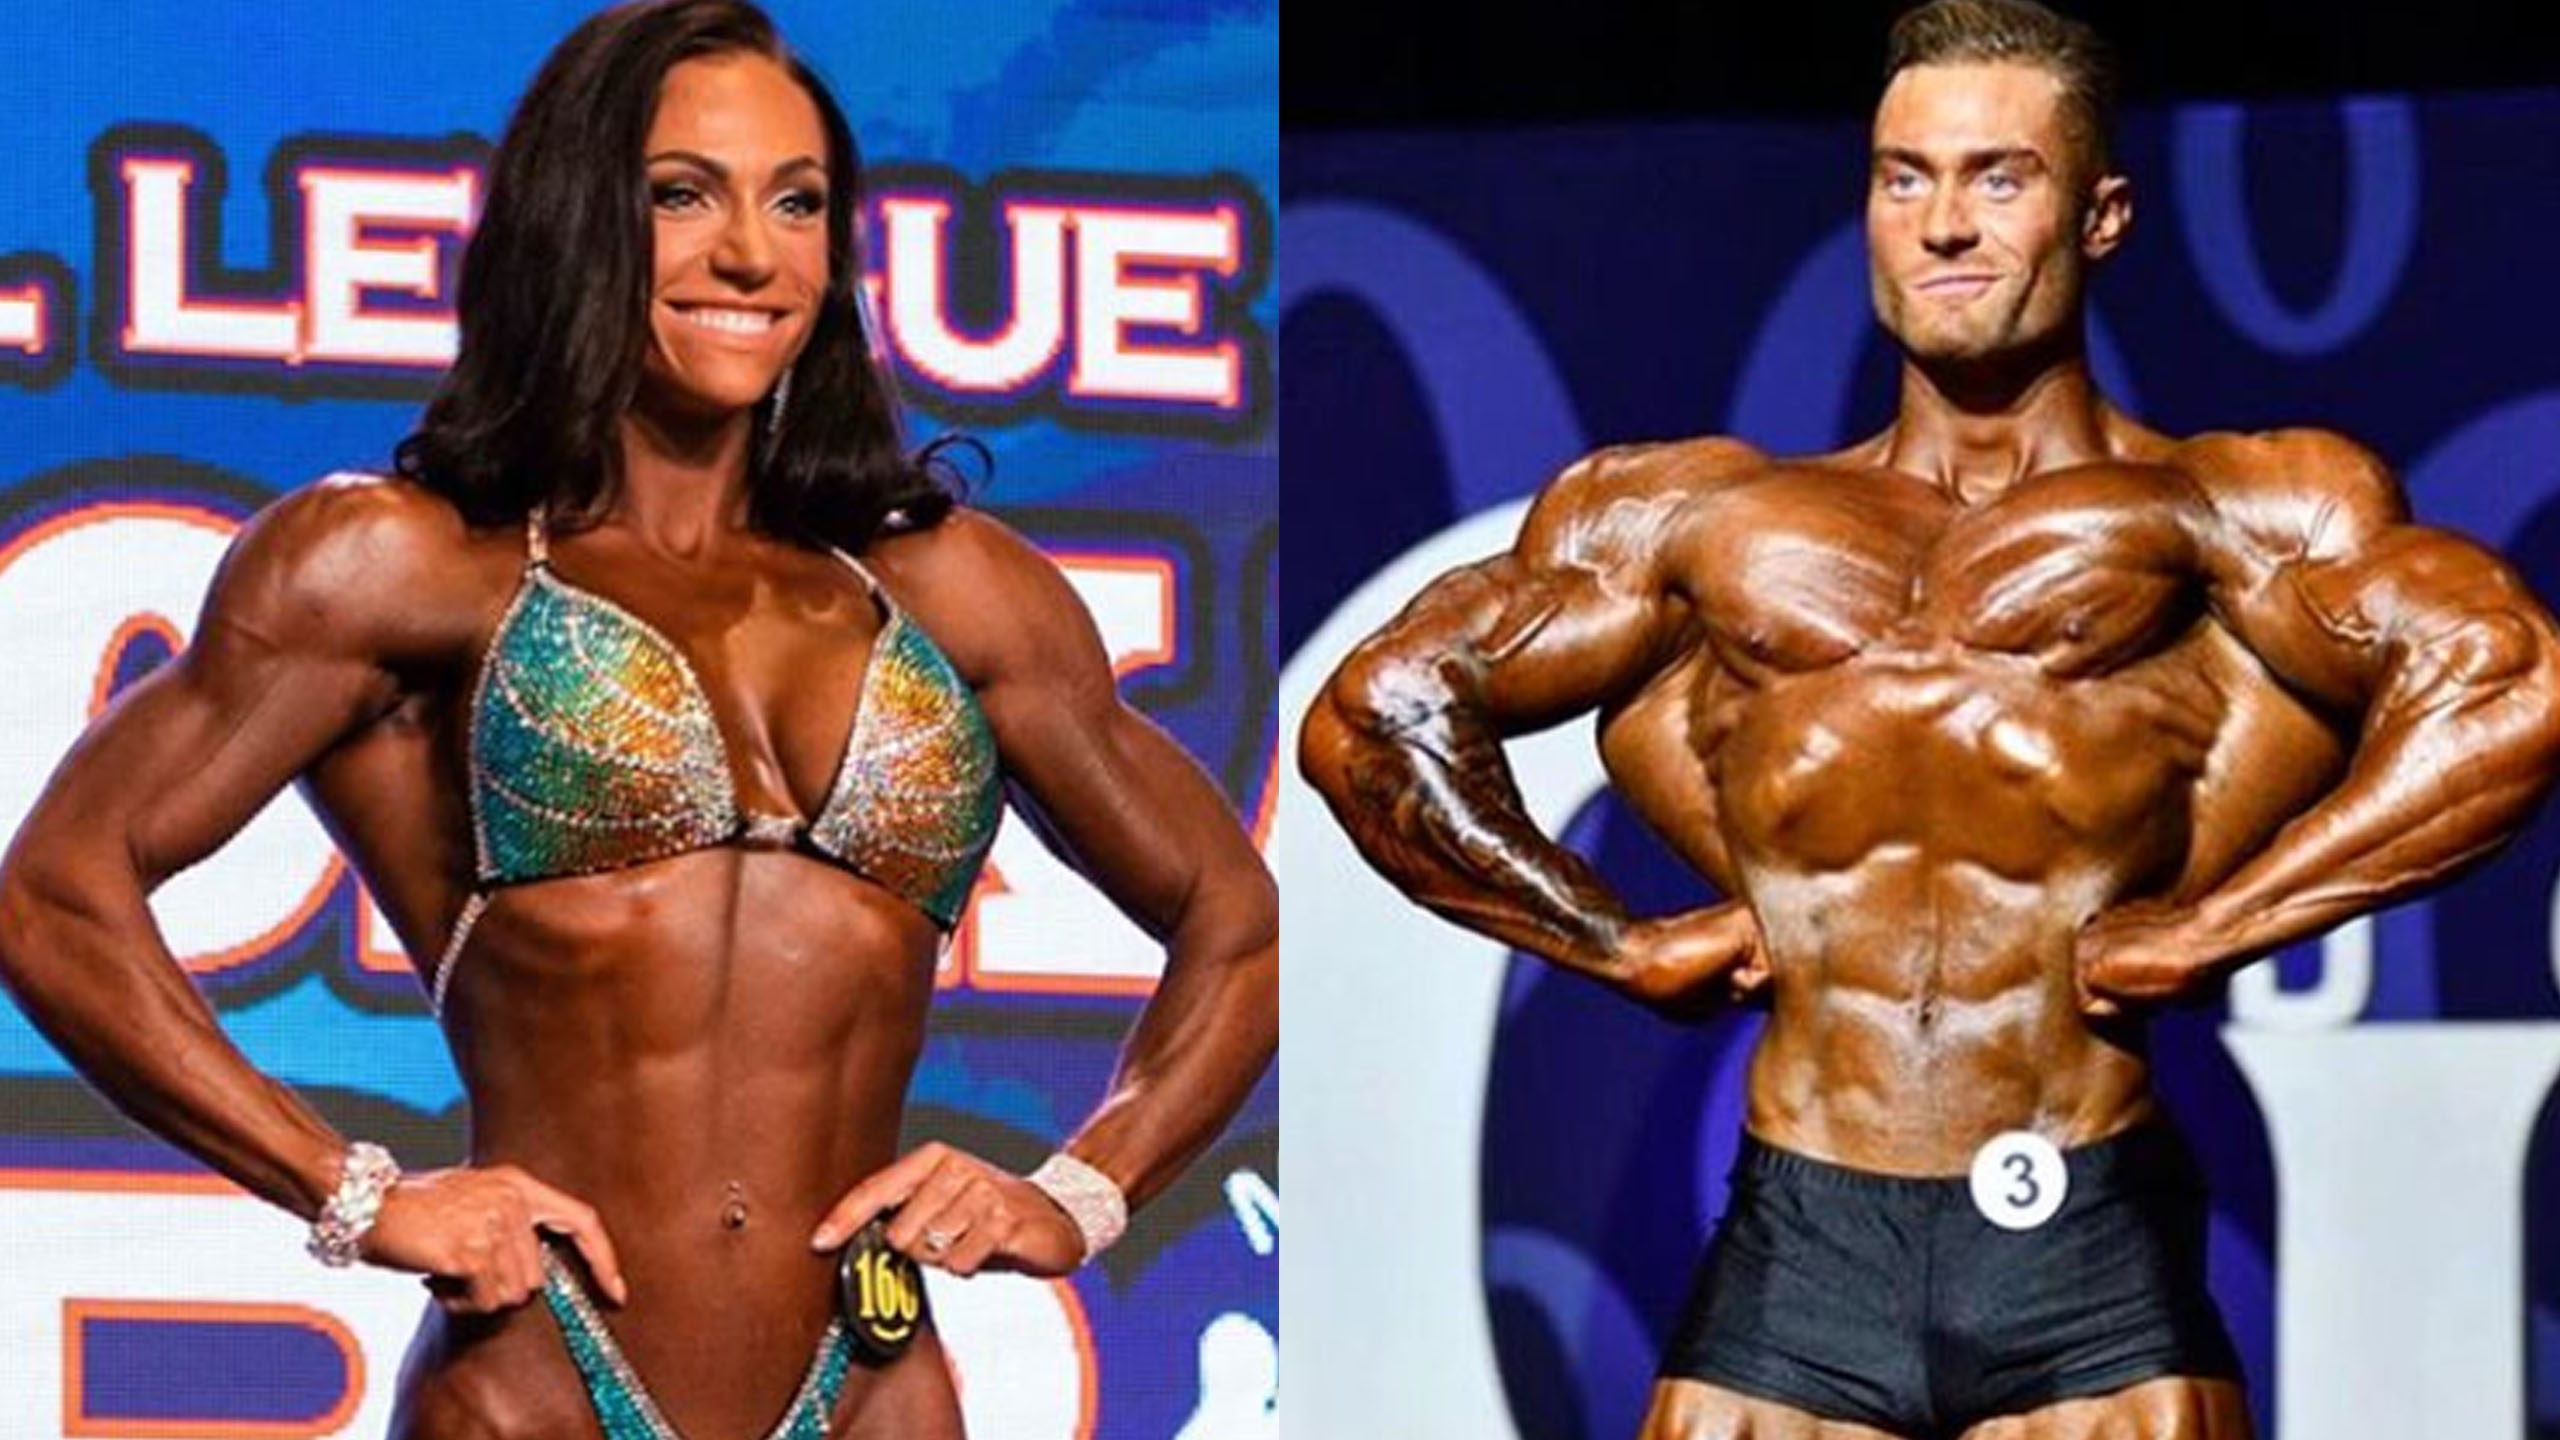 chris bumstead melissa bumstead